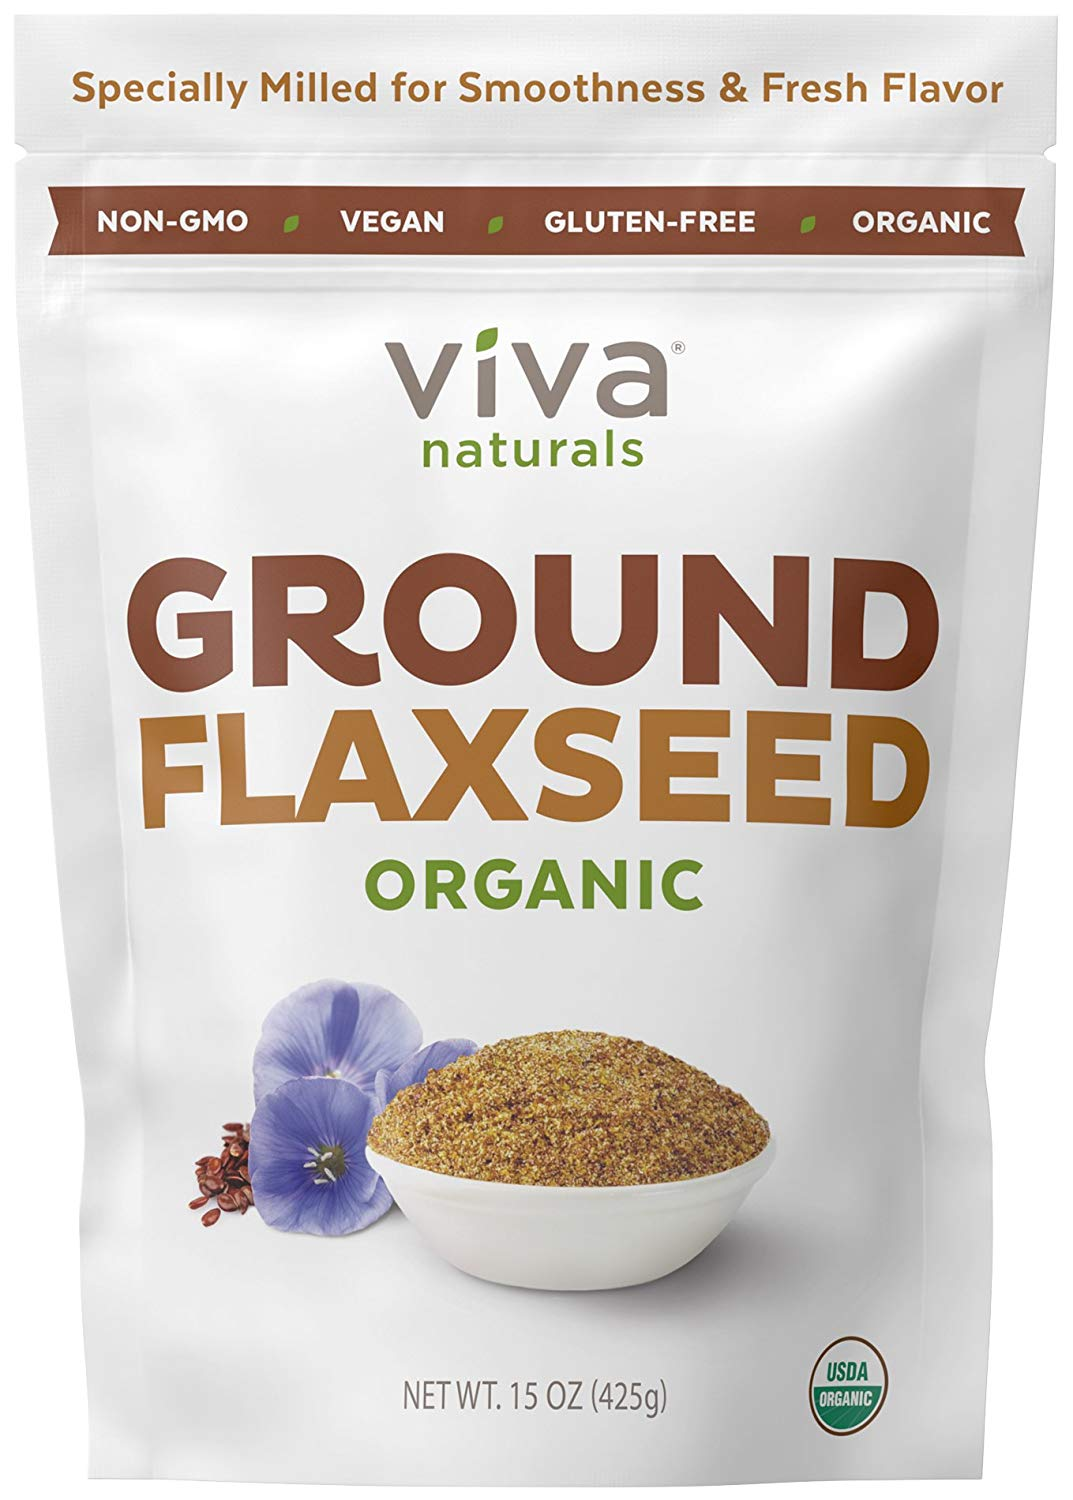 viva naturals ground organic flaxseed